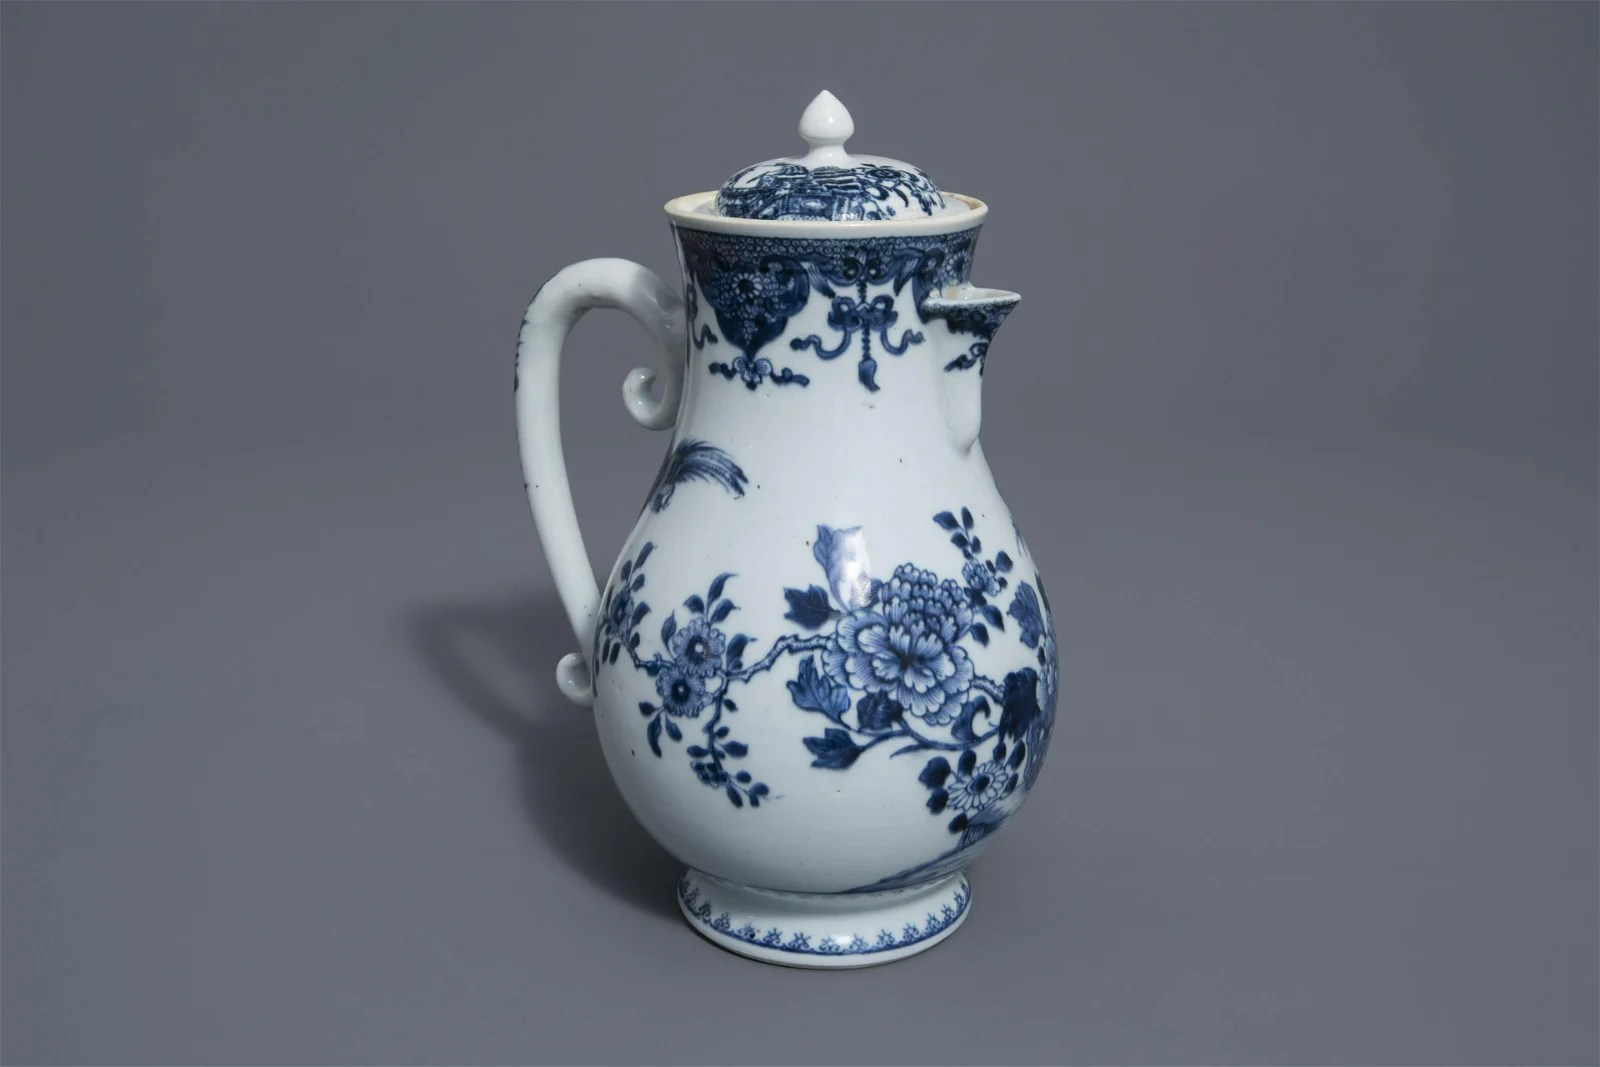 A very large Chinese blue and white ewer with floral